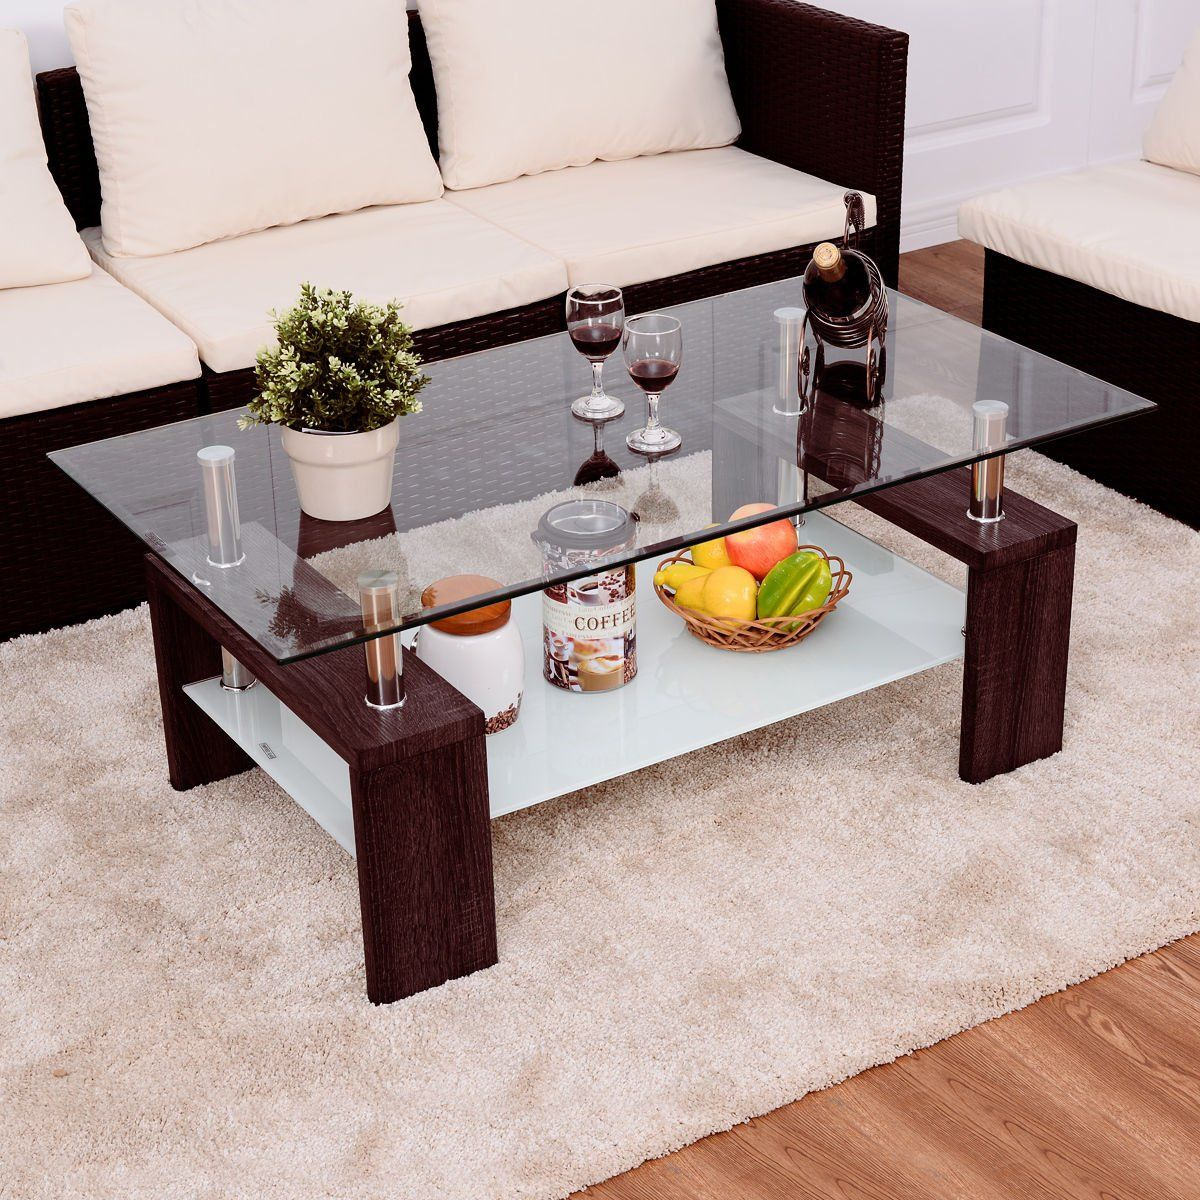 Rectangular Tempered Glass Coffee Table W Shelf Wood Living Room Furniture Allblessings Glass Coffee Tables Living Room Coffee Table Wood Furniture Living Room [ 1200 x 1200 Pixel ]